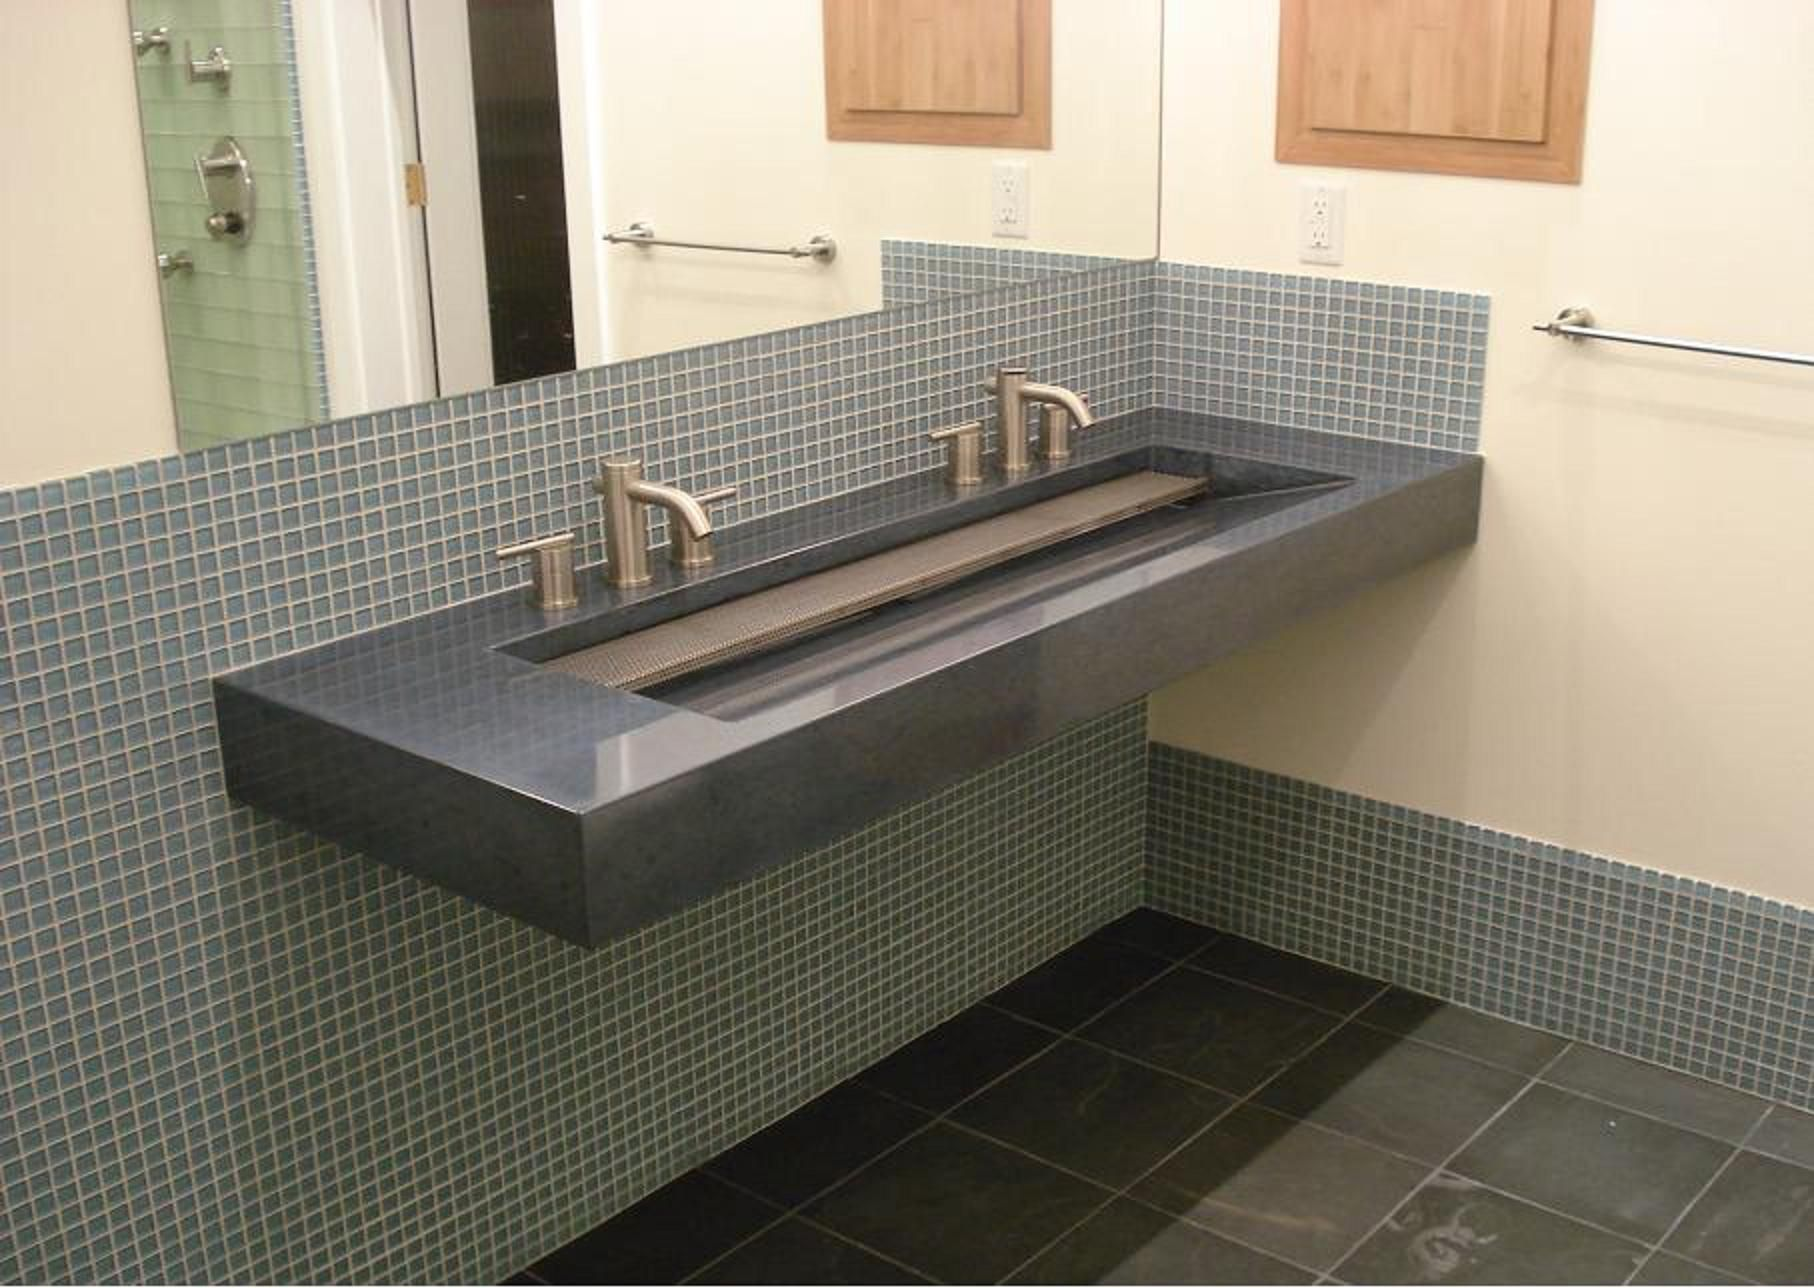 Eye Catching Grey Marble Commercial Trough Sink With Double Stainless Steel Faucet And Large Bathroom